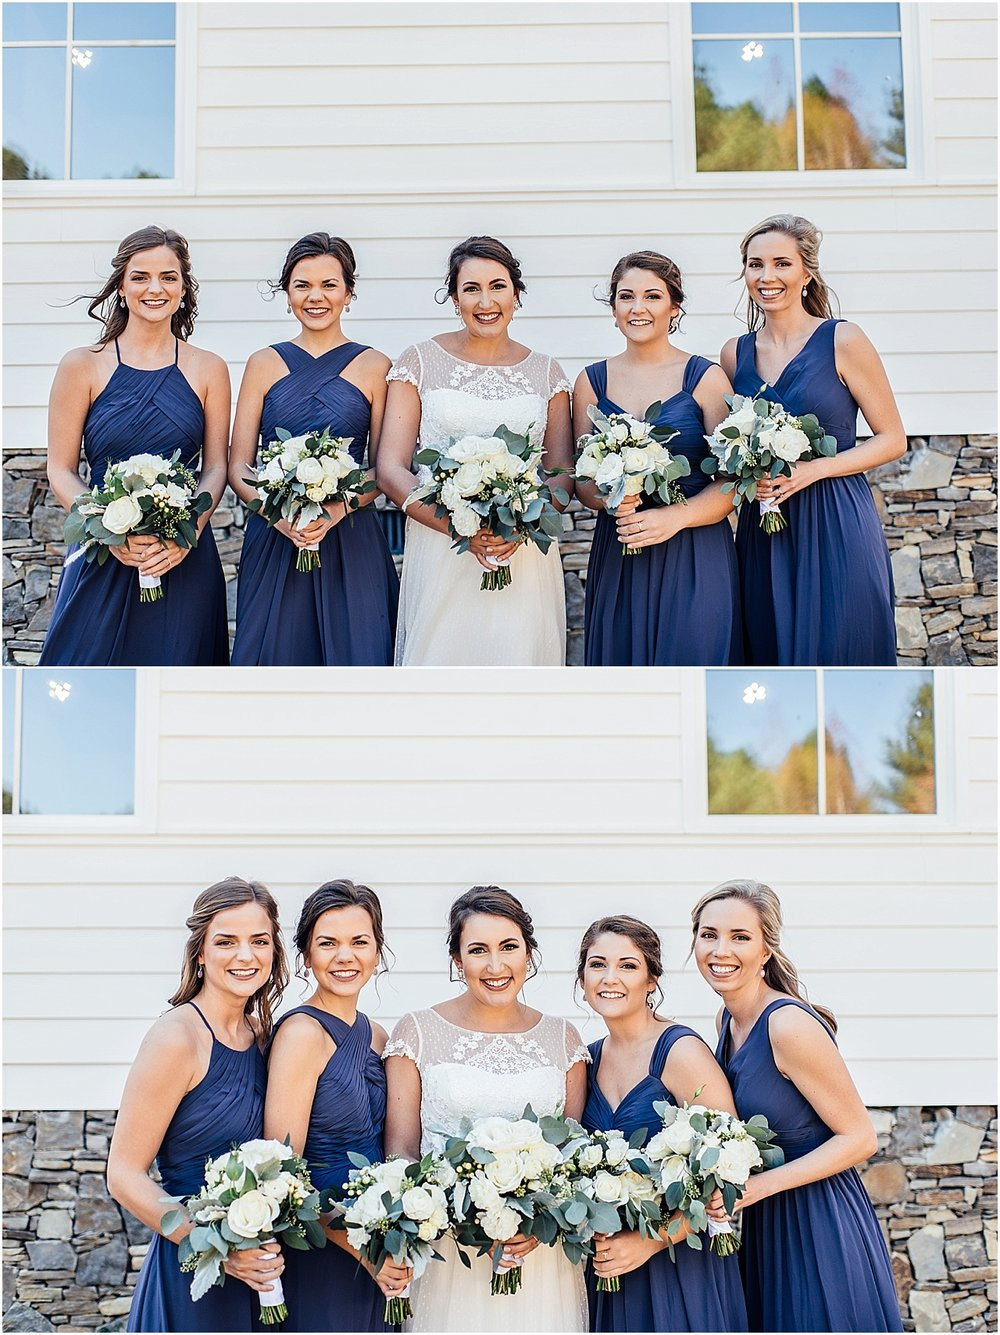 lindsey ann photography, wedding photographer, birmingham wedding photographer, alabama wedding photographer